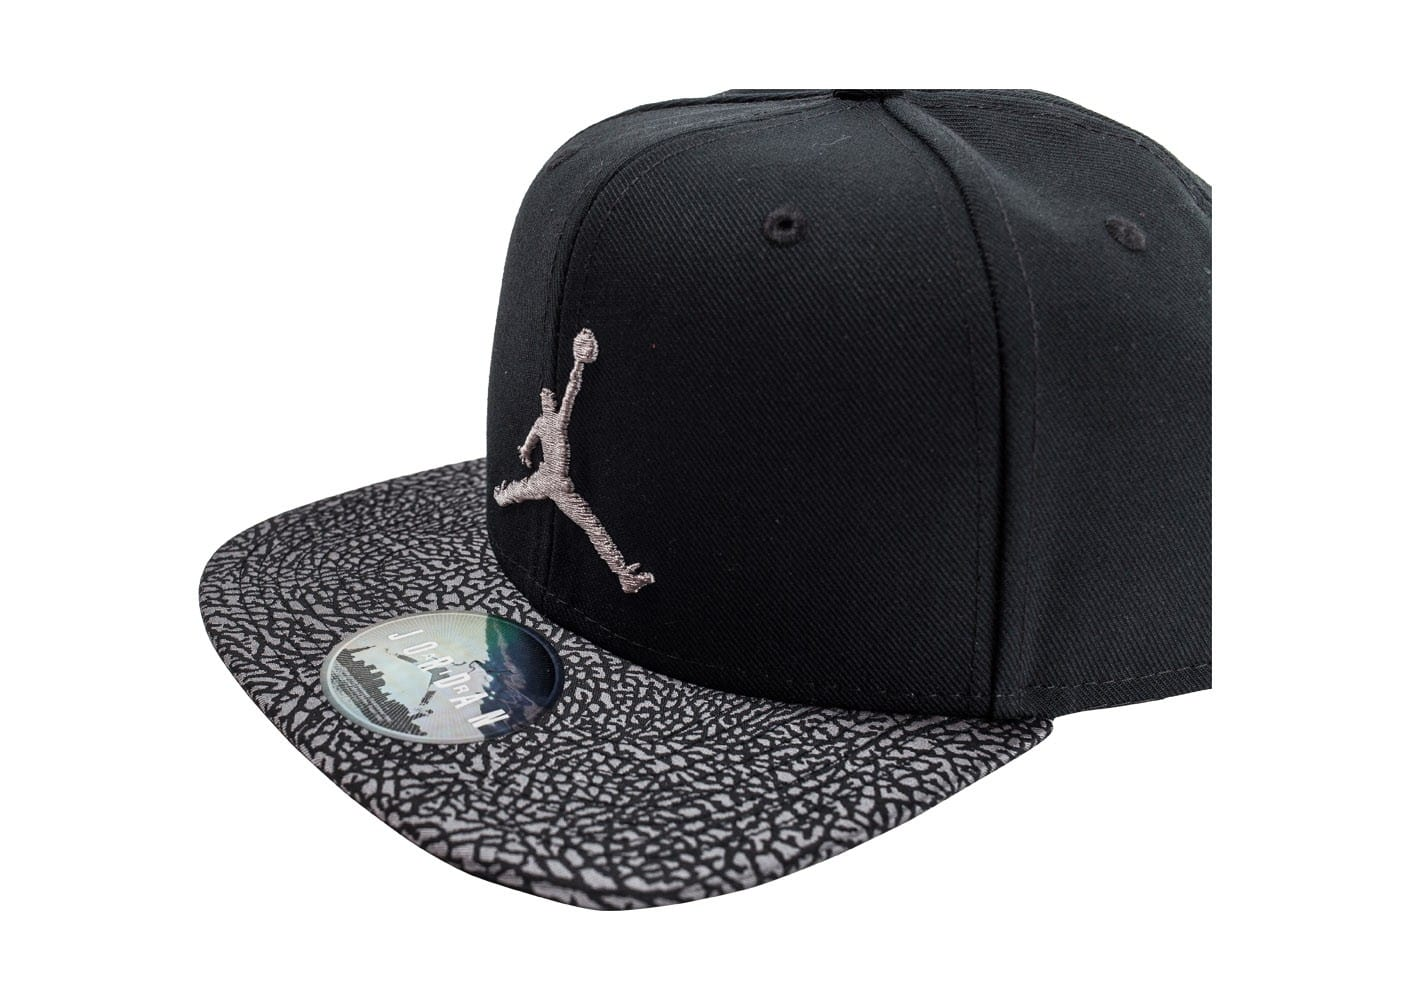 jordan casquette snapback elephant noire black friday chausport. Black Bedroom Furniture Sets. Home Design Ideas